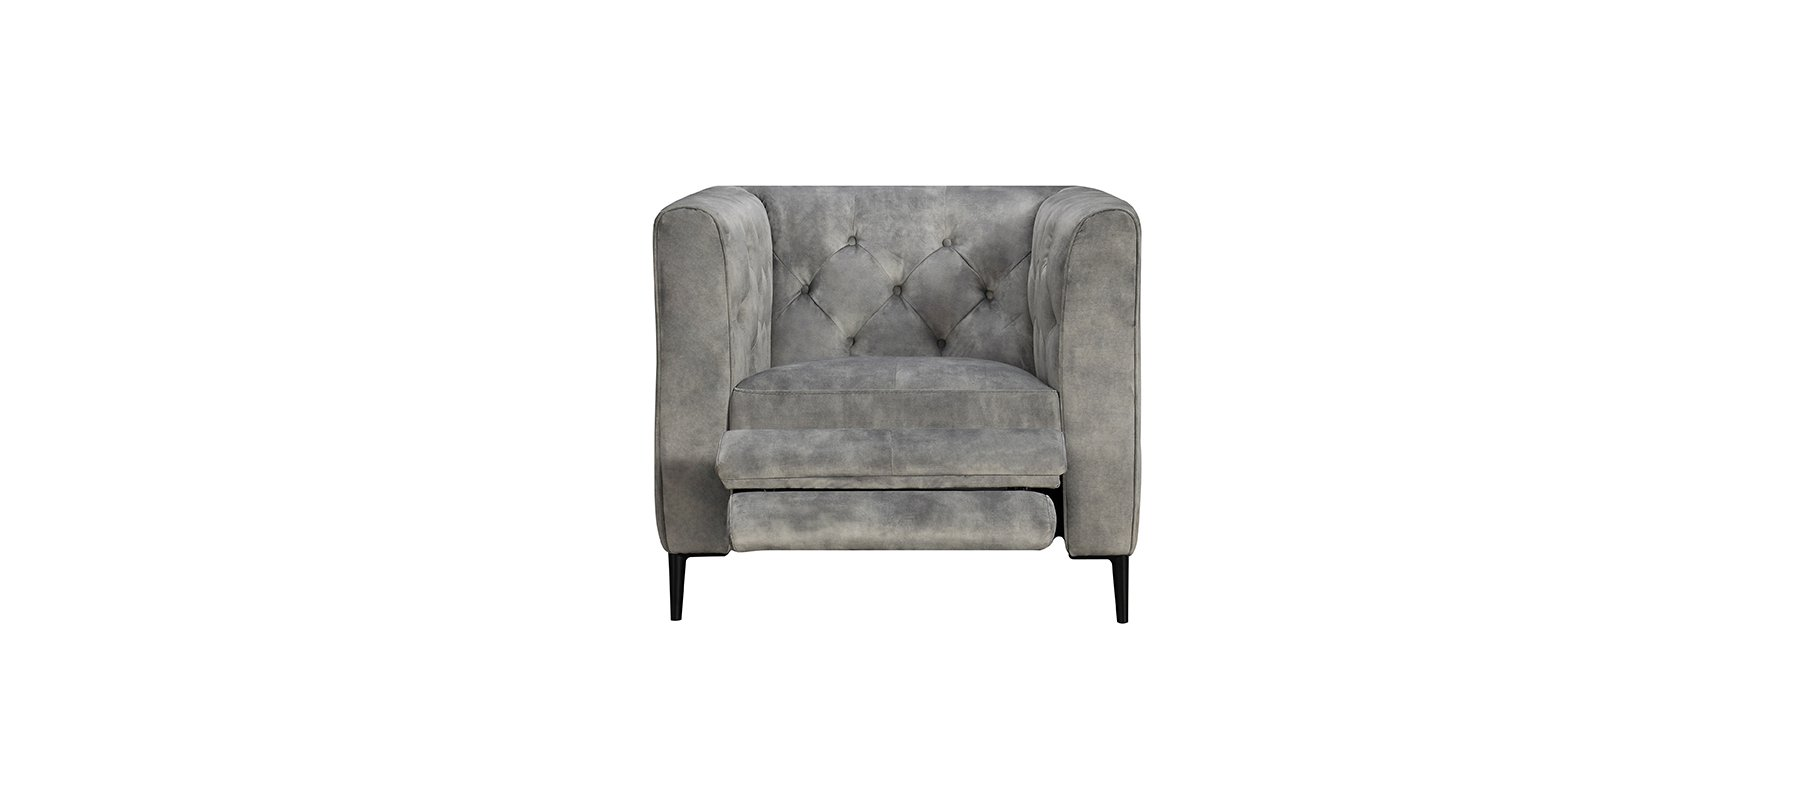 Fauteuil relaxation ANGE - Largeur 87 cm